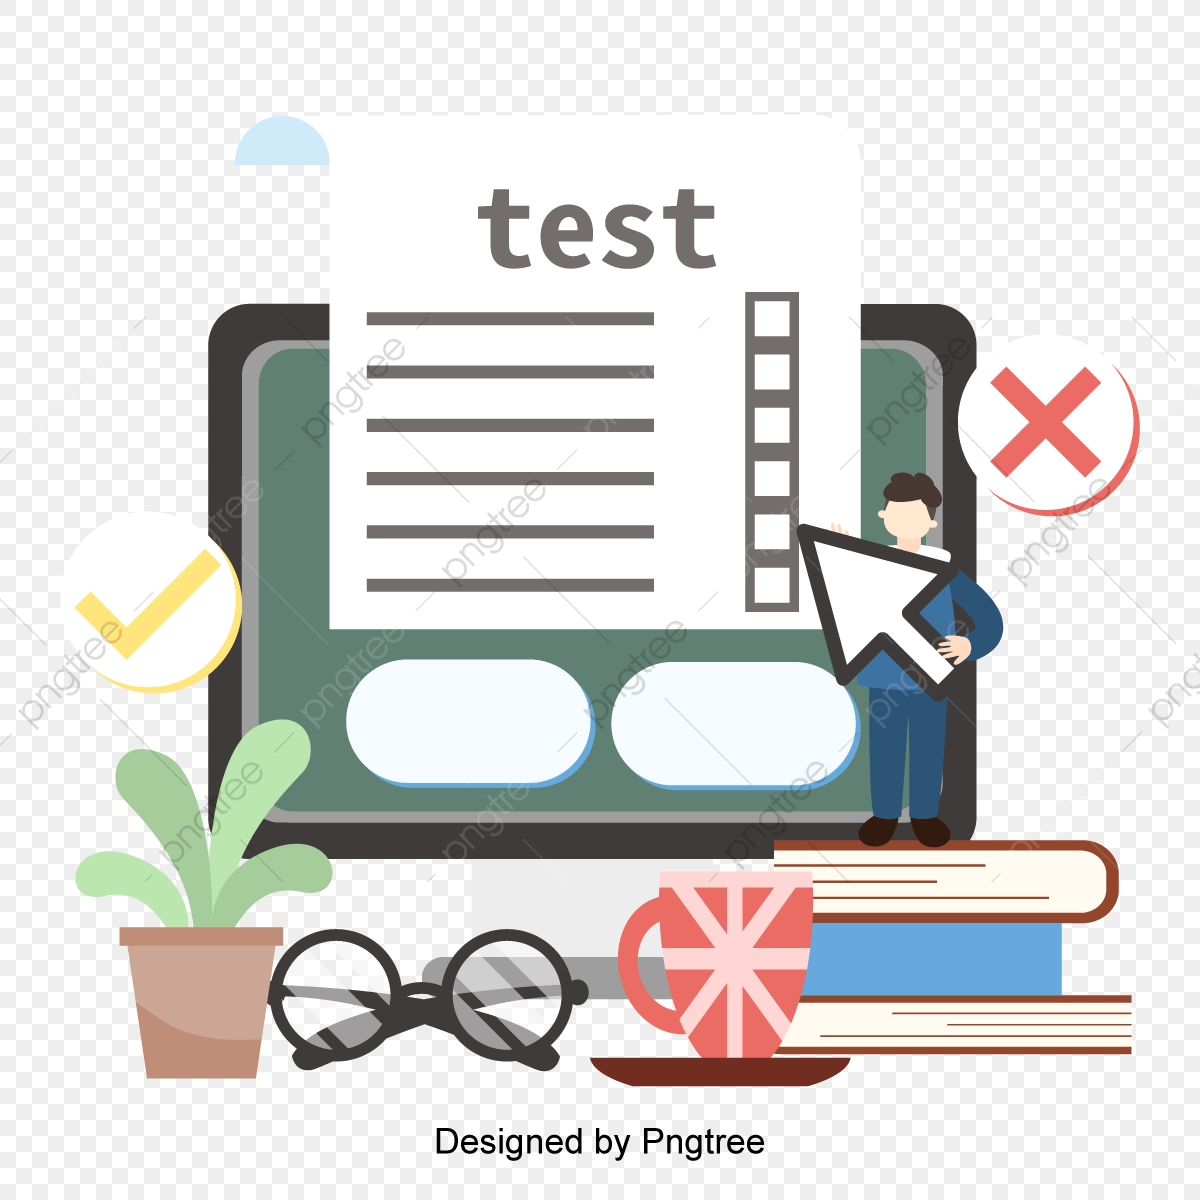 Vector Flat Online Education Learning Test Illustration Delayering Online Education Online Png And Vector With Transparent Background For Free Download